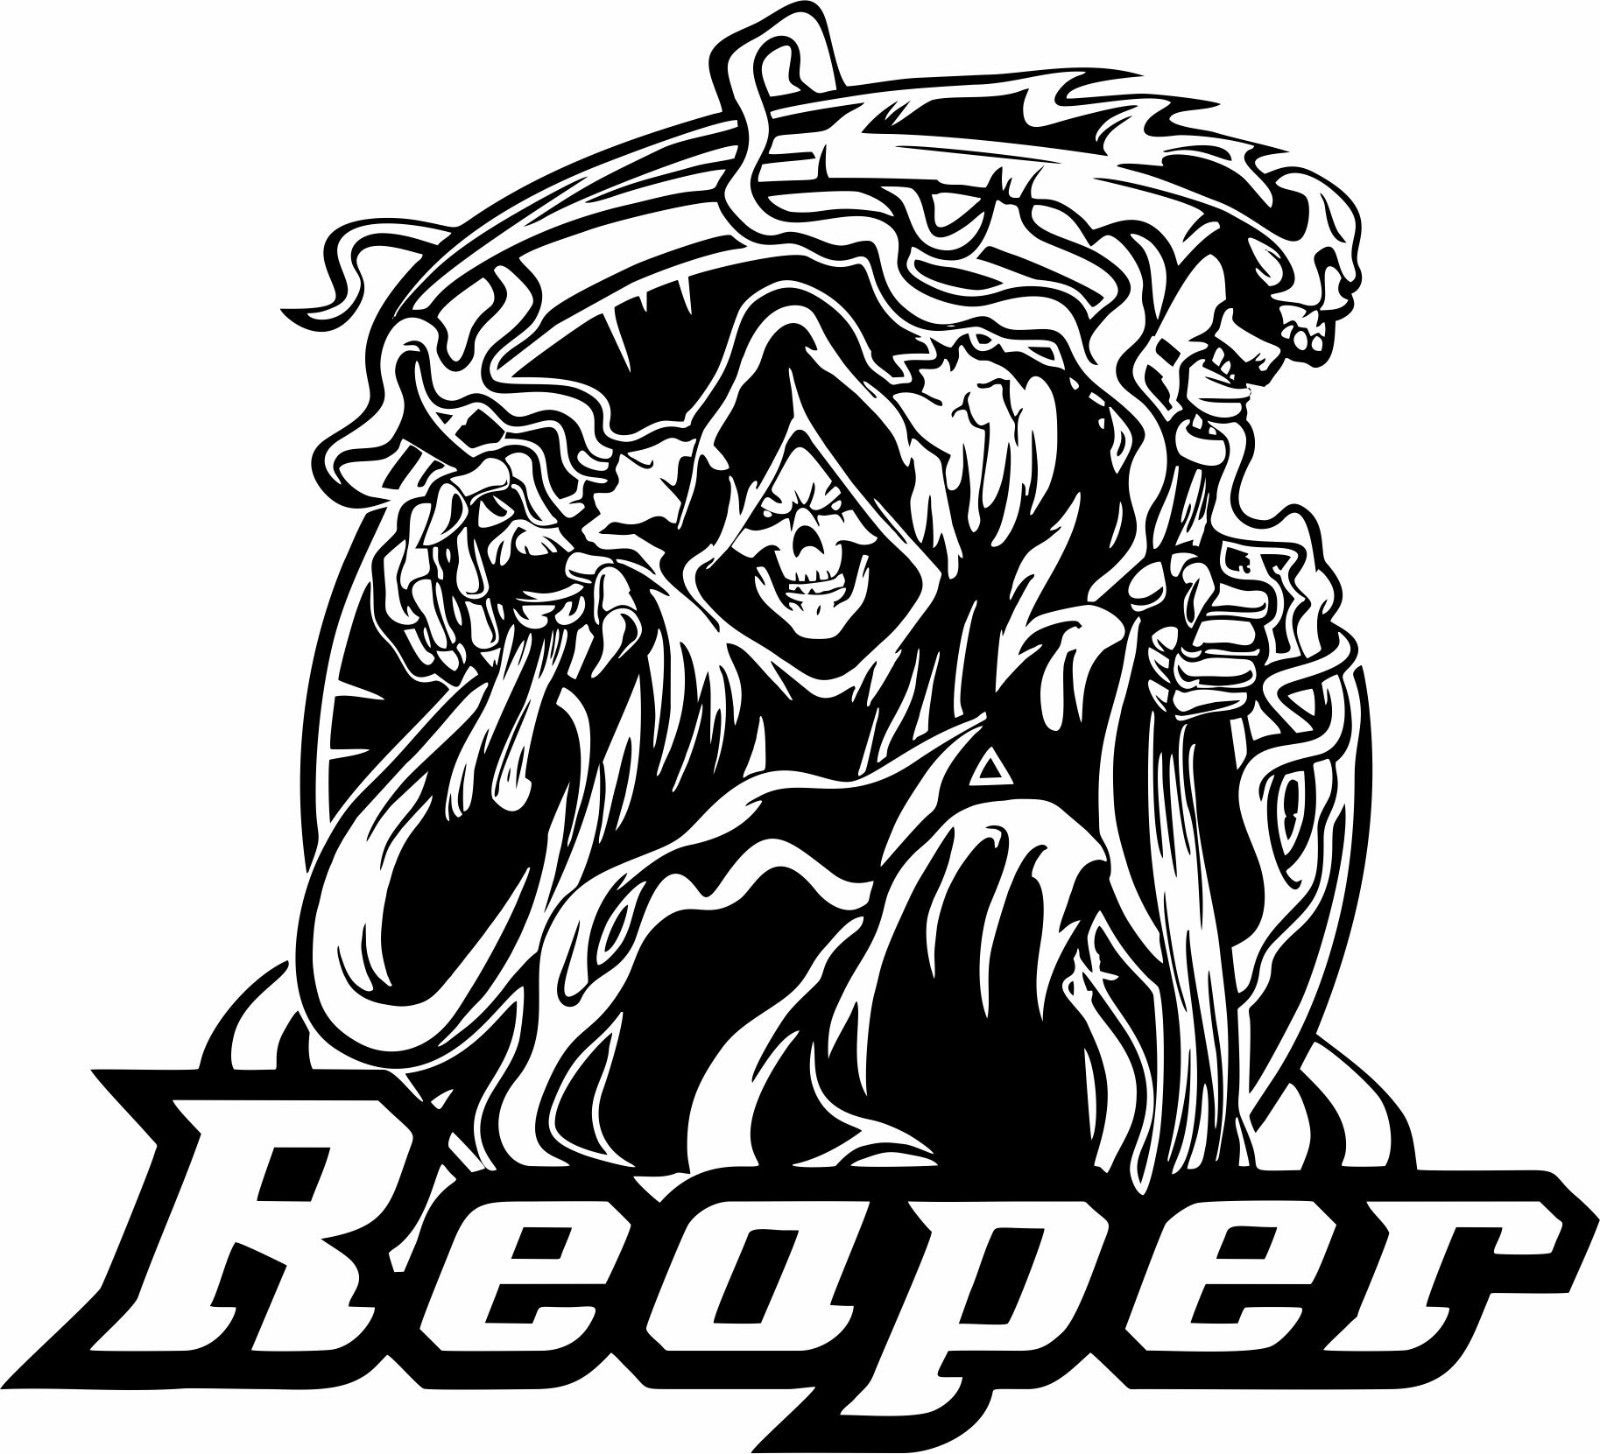 "Grim Reaper Scythe Death Shinigami Scary Car Truck Window Vinyl Decal Sticker - 10"" Long Edge"